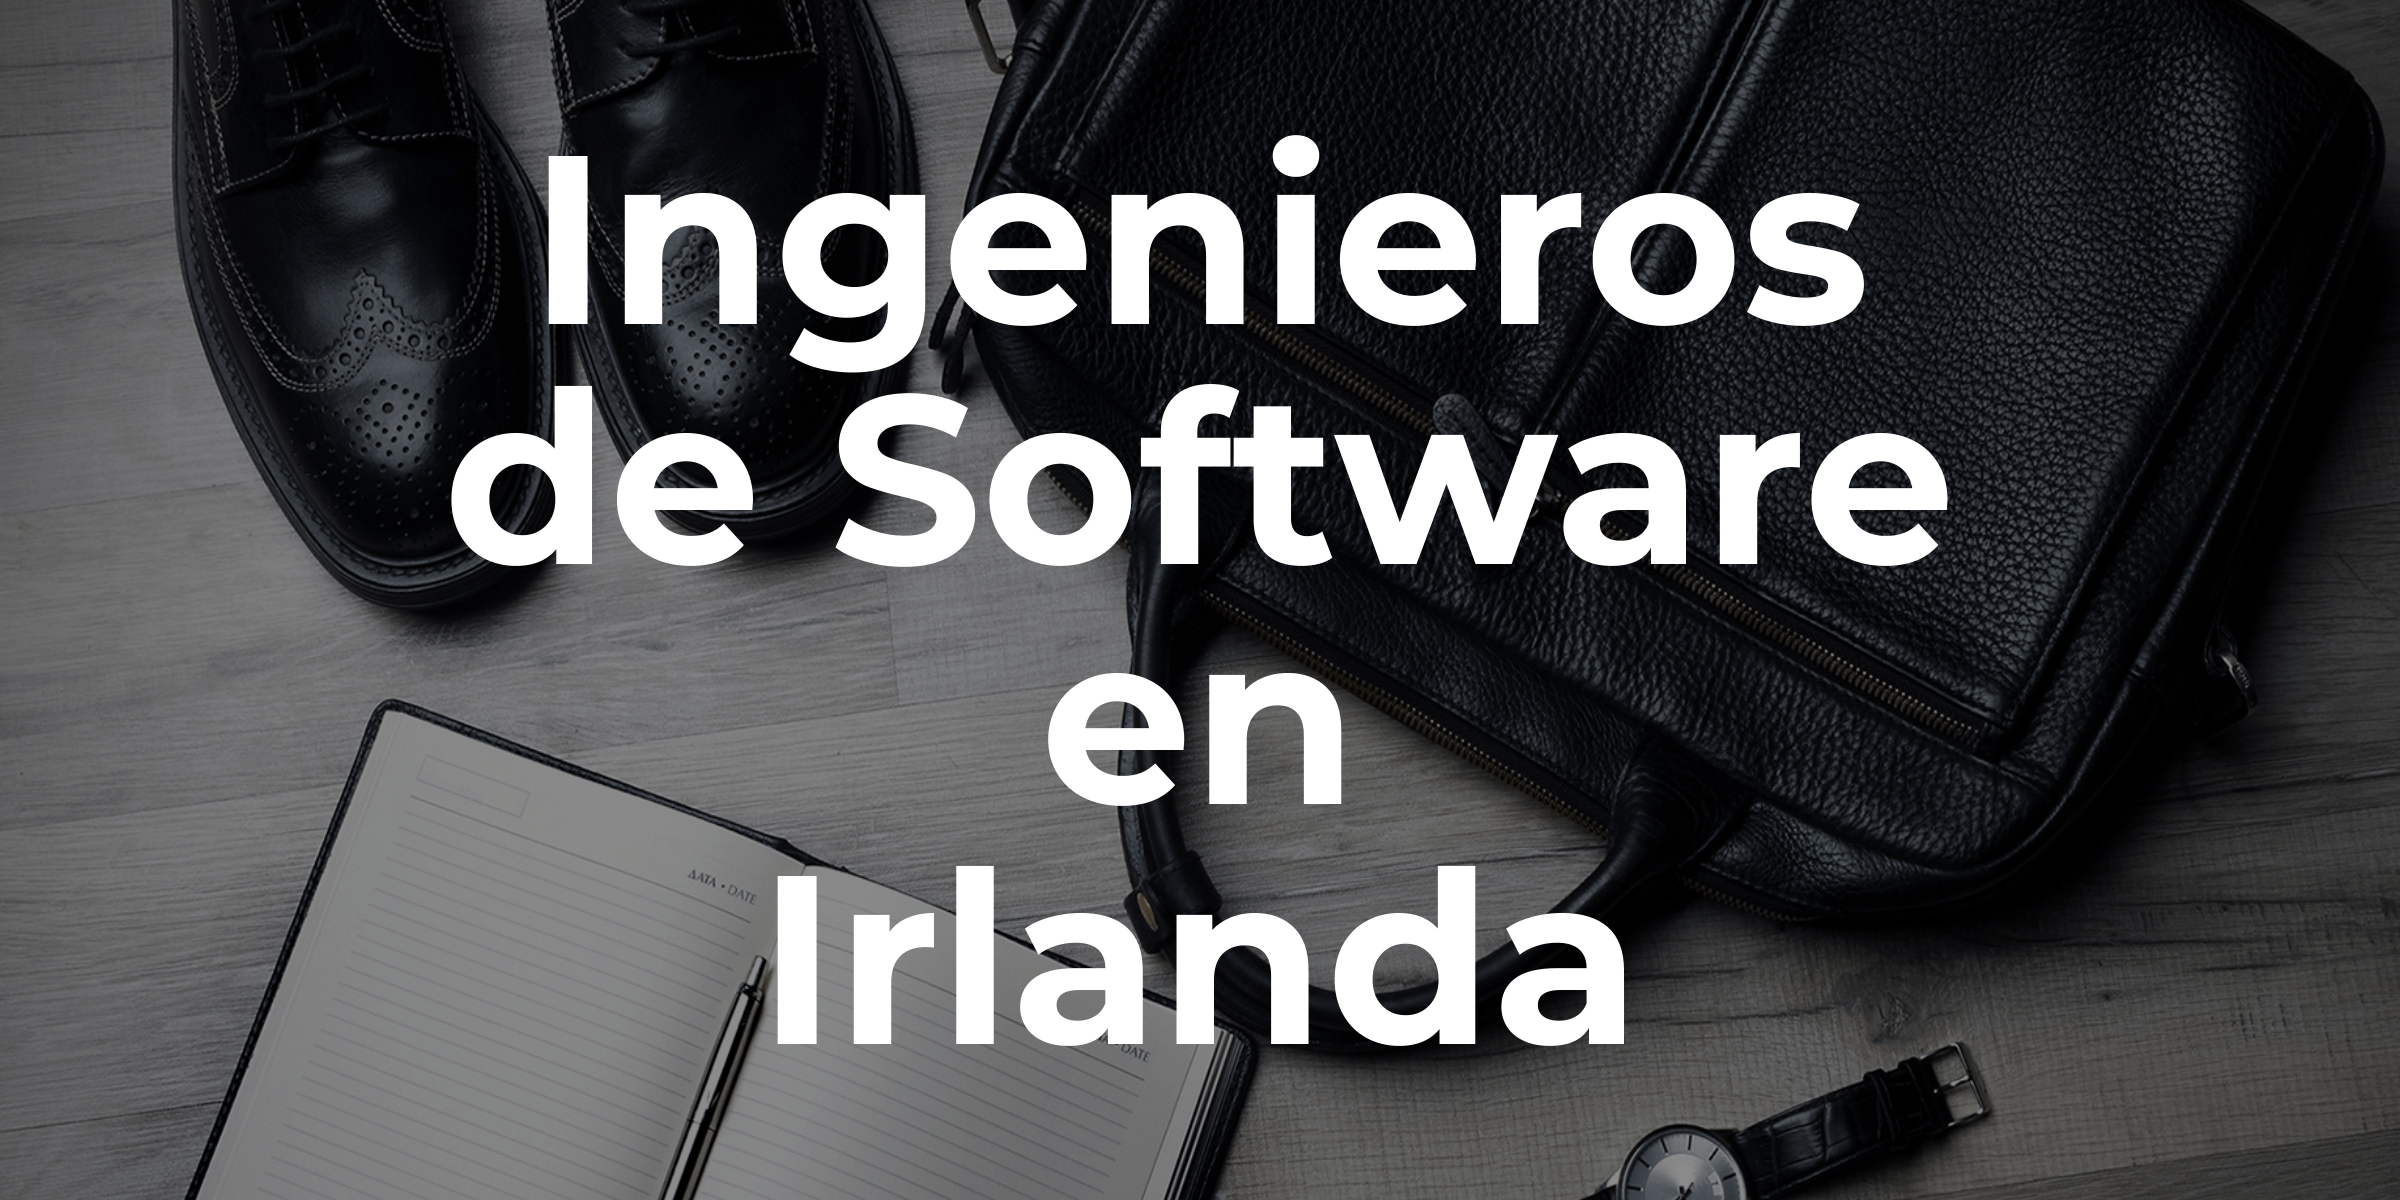 Ingenieros de Software en Irlanda